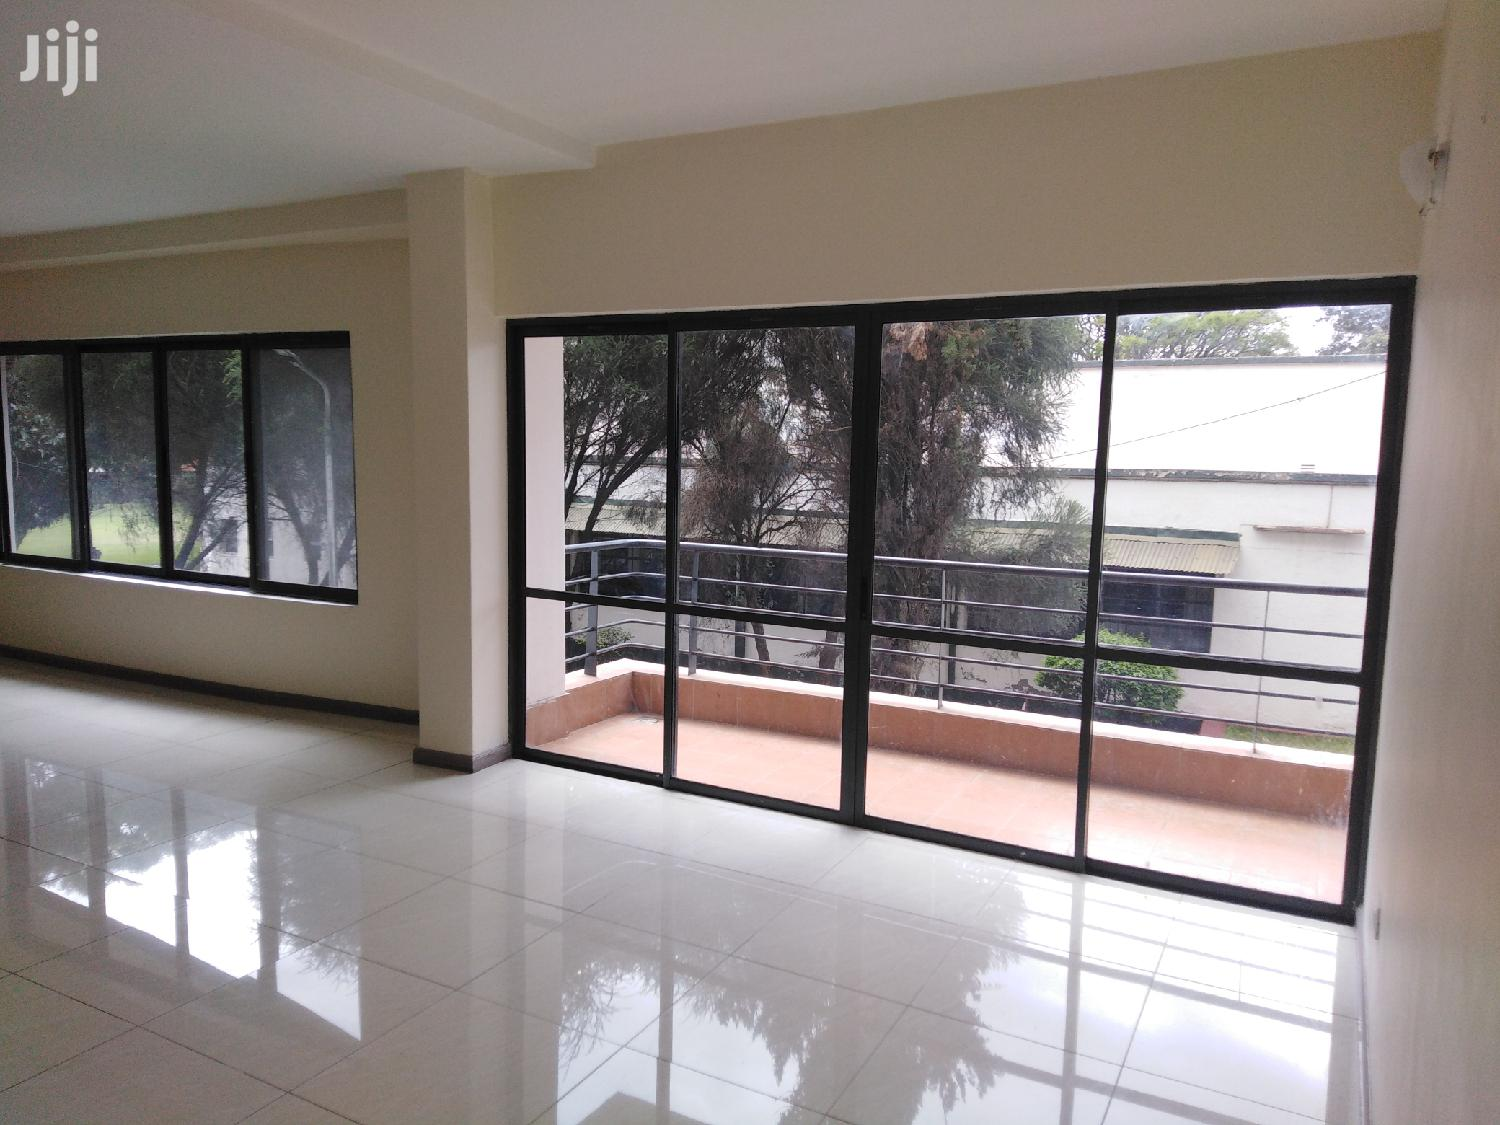 2 and 3 Bedroom Apartment 4 Rent at Section 58 Estate in Nakuru Town.